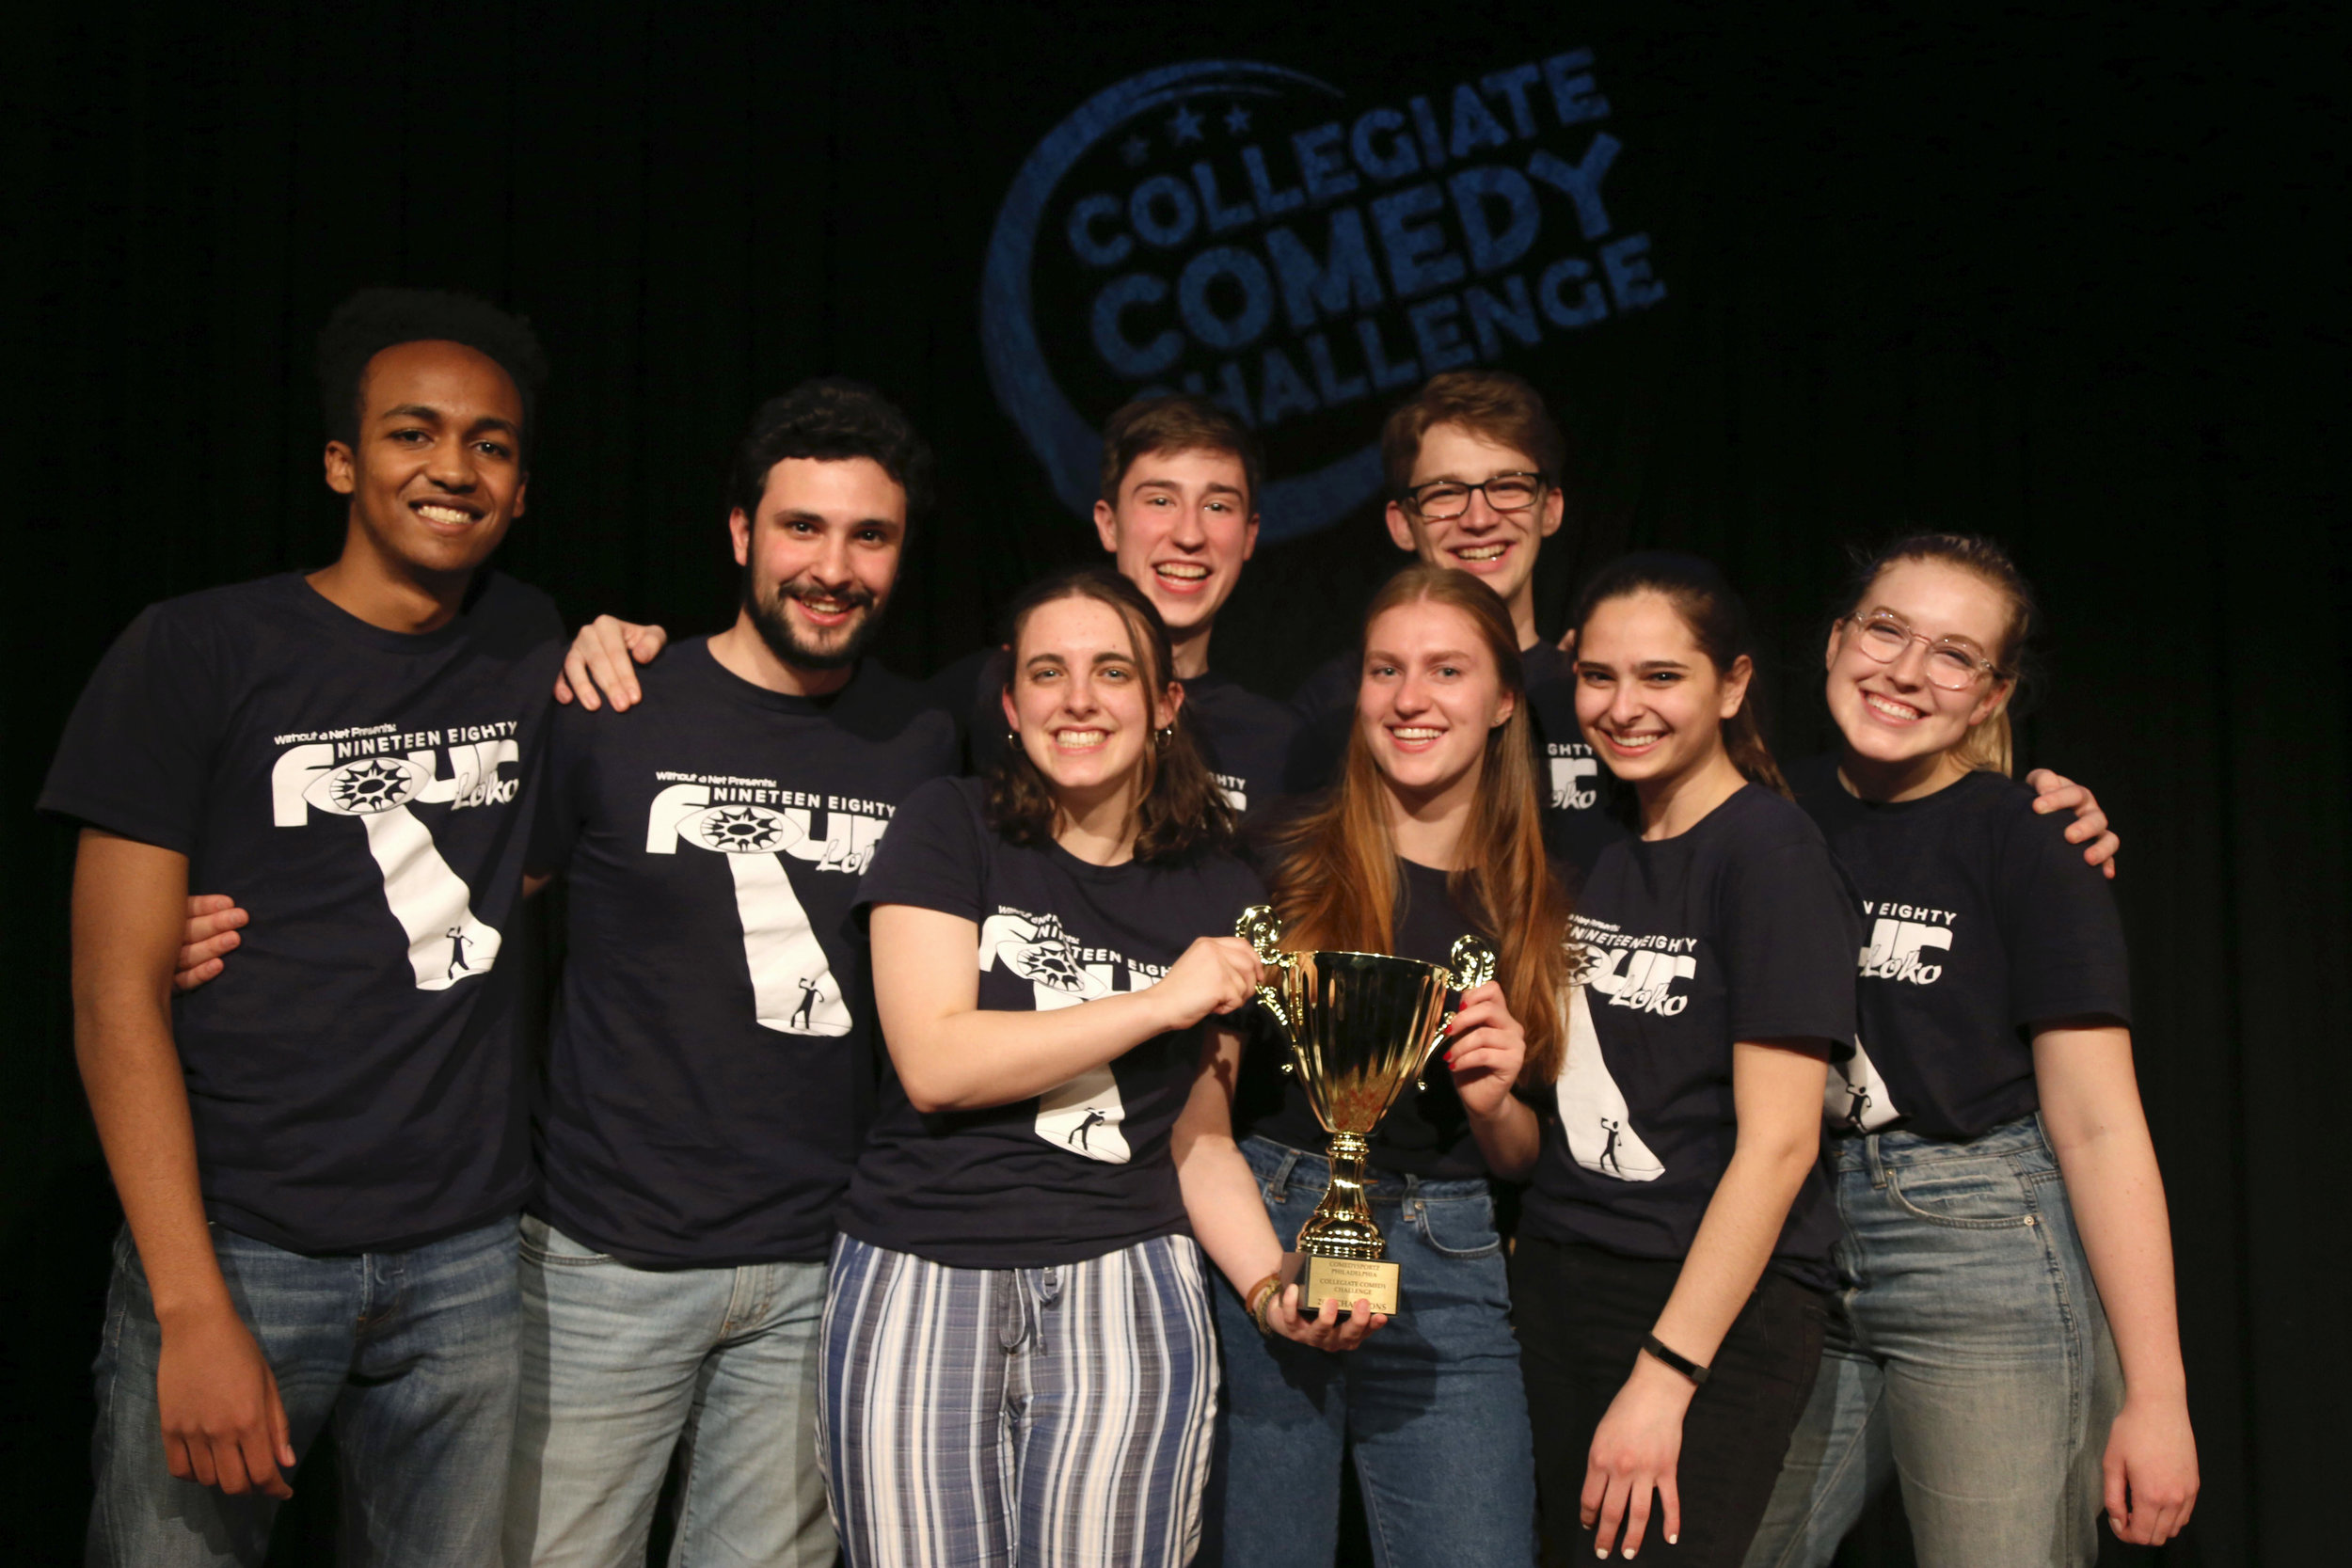 The 2019 Winners: Without A Net (University of Pennsylvania)